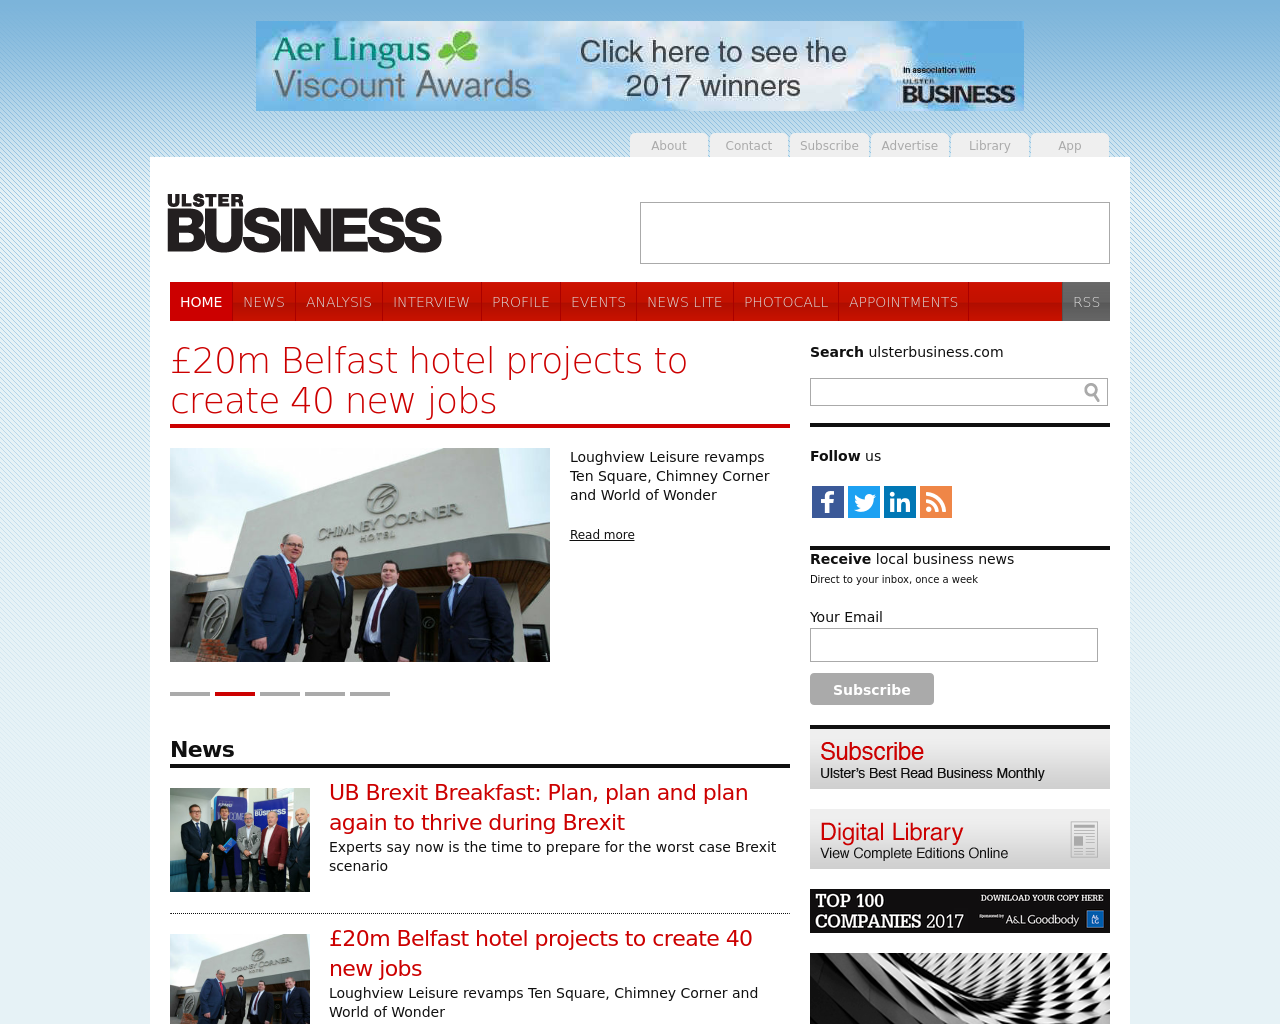 Ulster-Business-Advertising-Reviews-Pricing